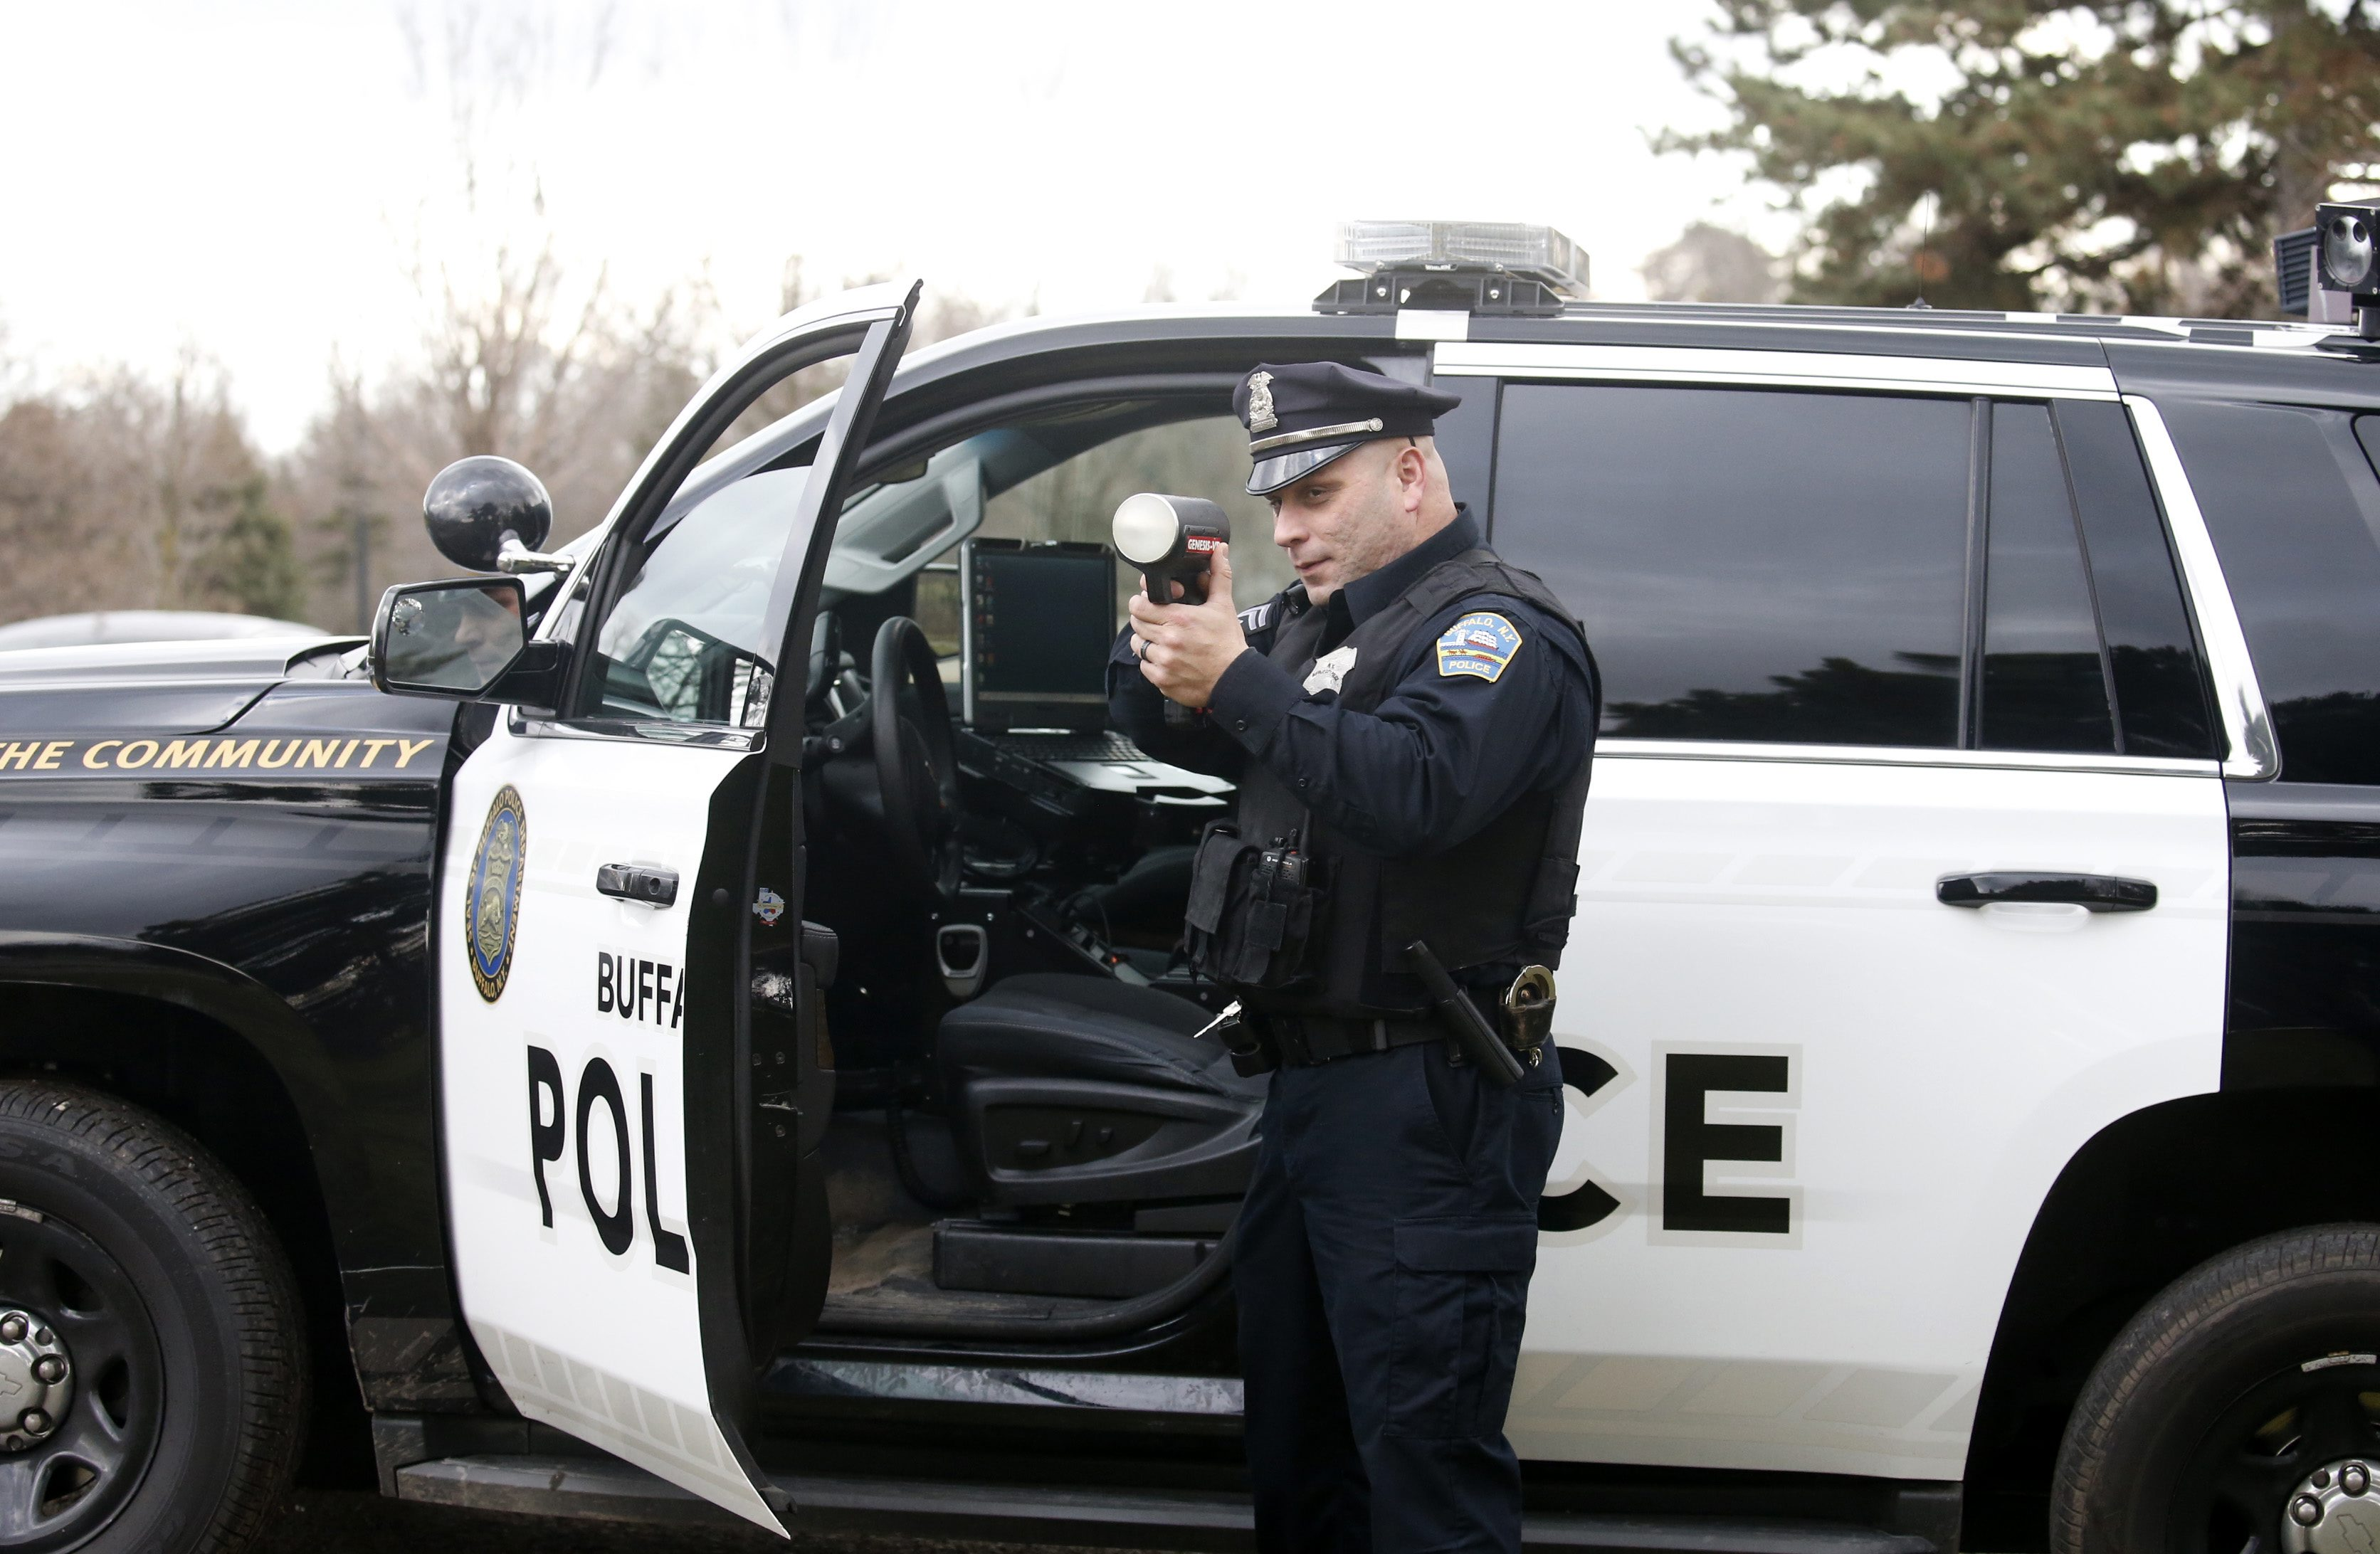 Buffalo police Officer Obed Casillas aims a radar to catch speeders in the 'S-Curves' section of Delaware Avenue on Wednesday, Feb. 3, 2016.  (Robert Kirkham/Buffalo News)